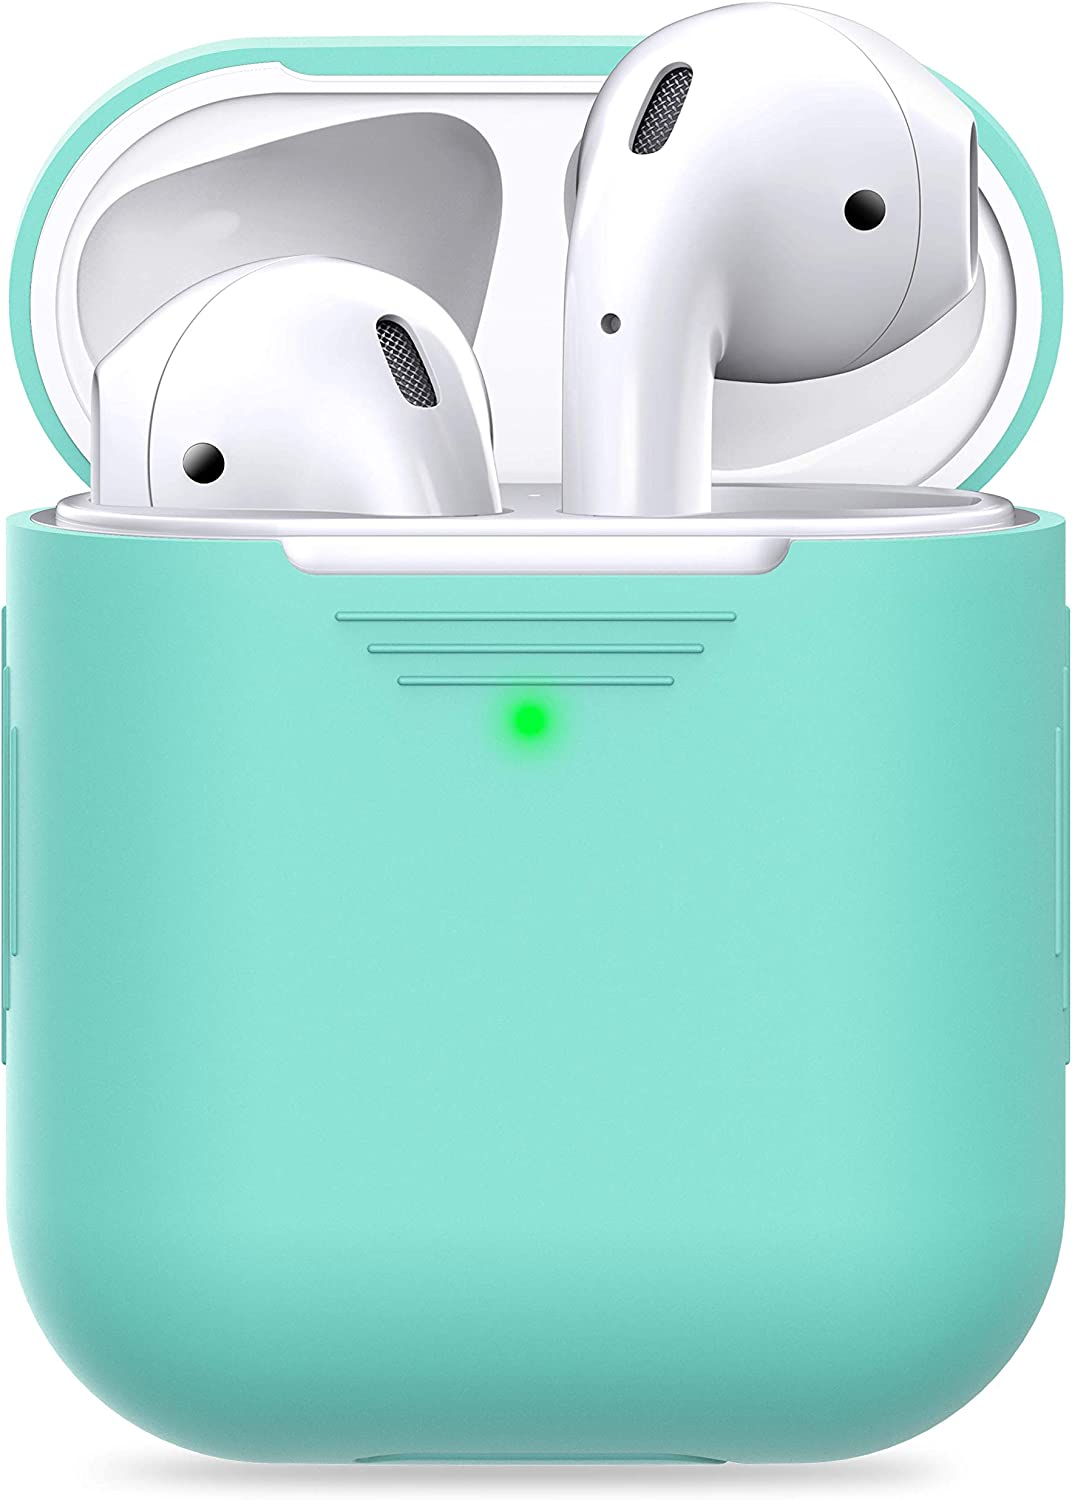 PodSkinz AirPods 2 /& 1 Case Front LED Visible Protective Silicone Cover and Skin Compatible with Apple AirPods Diamond Blue